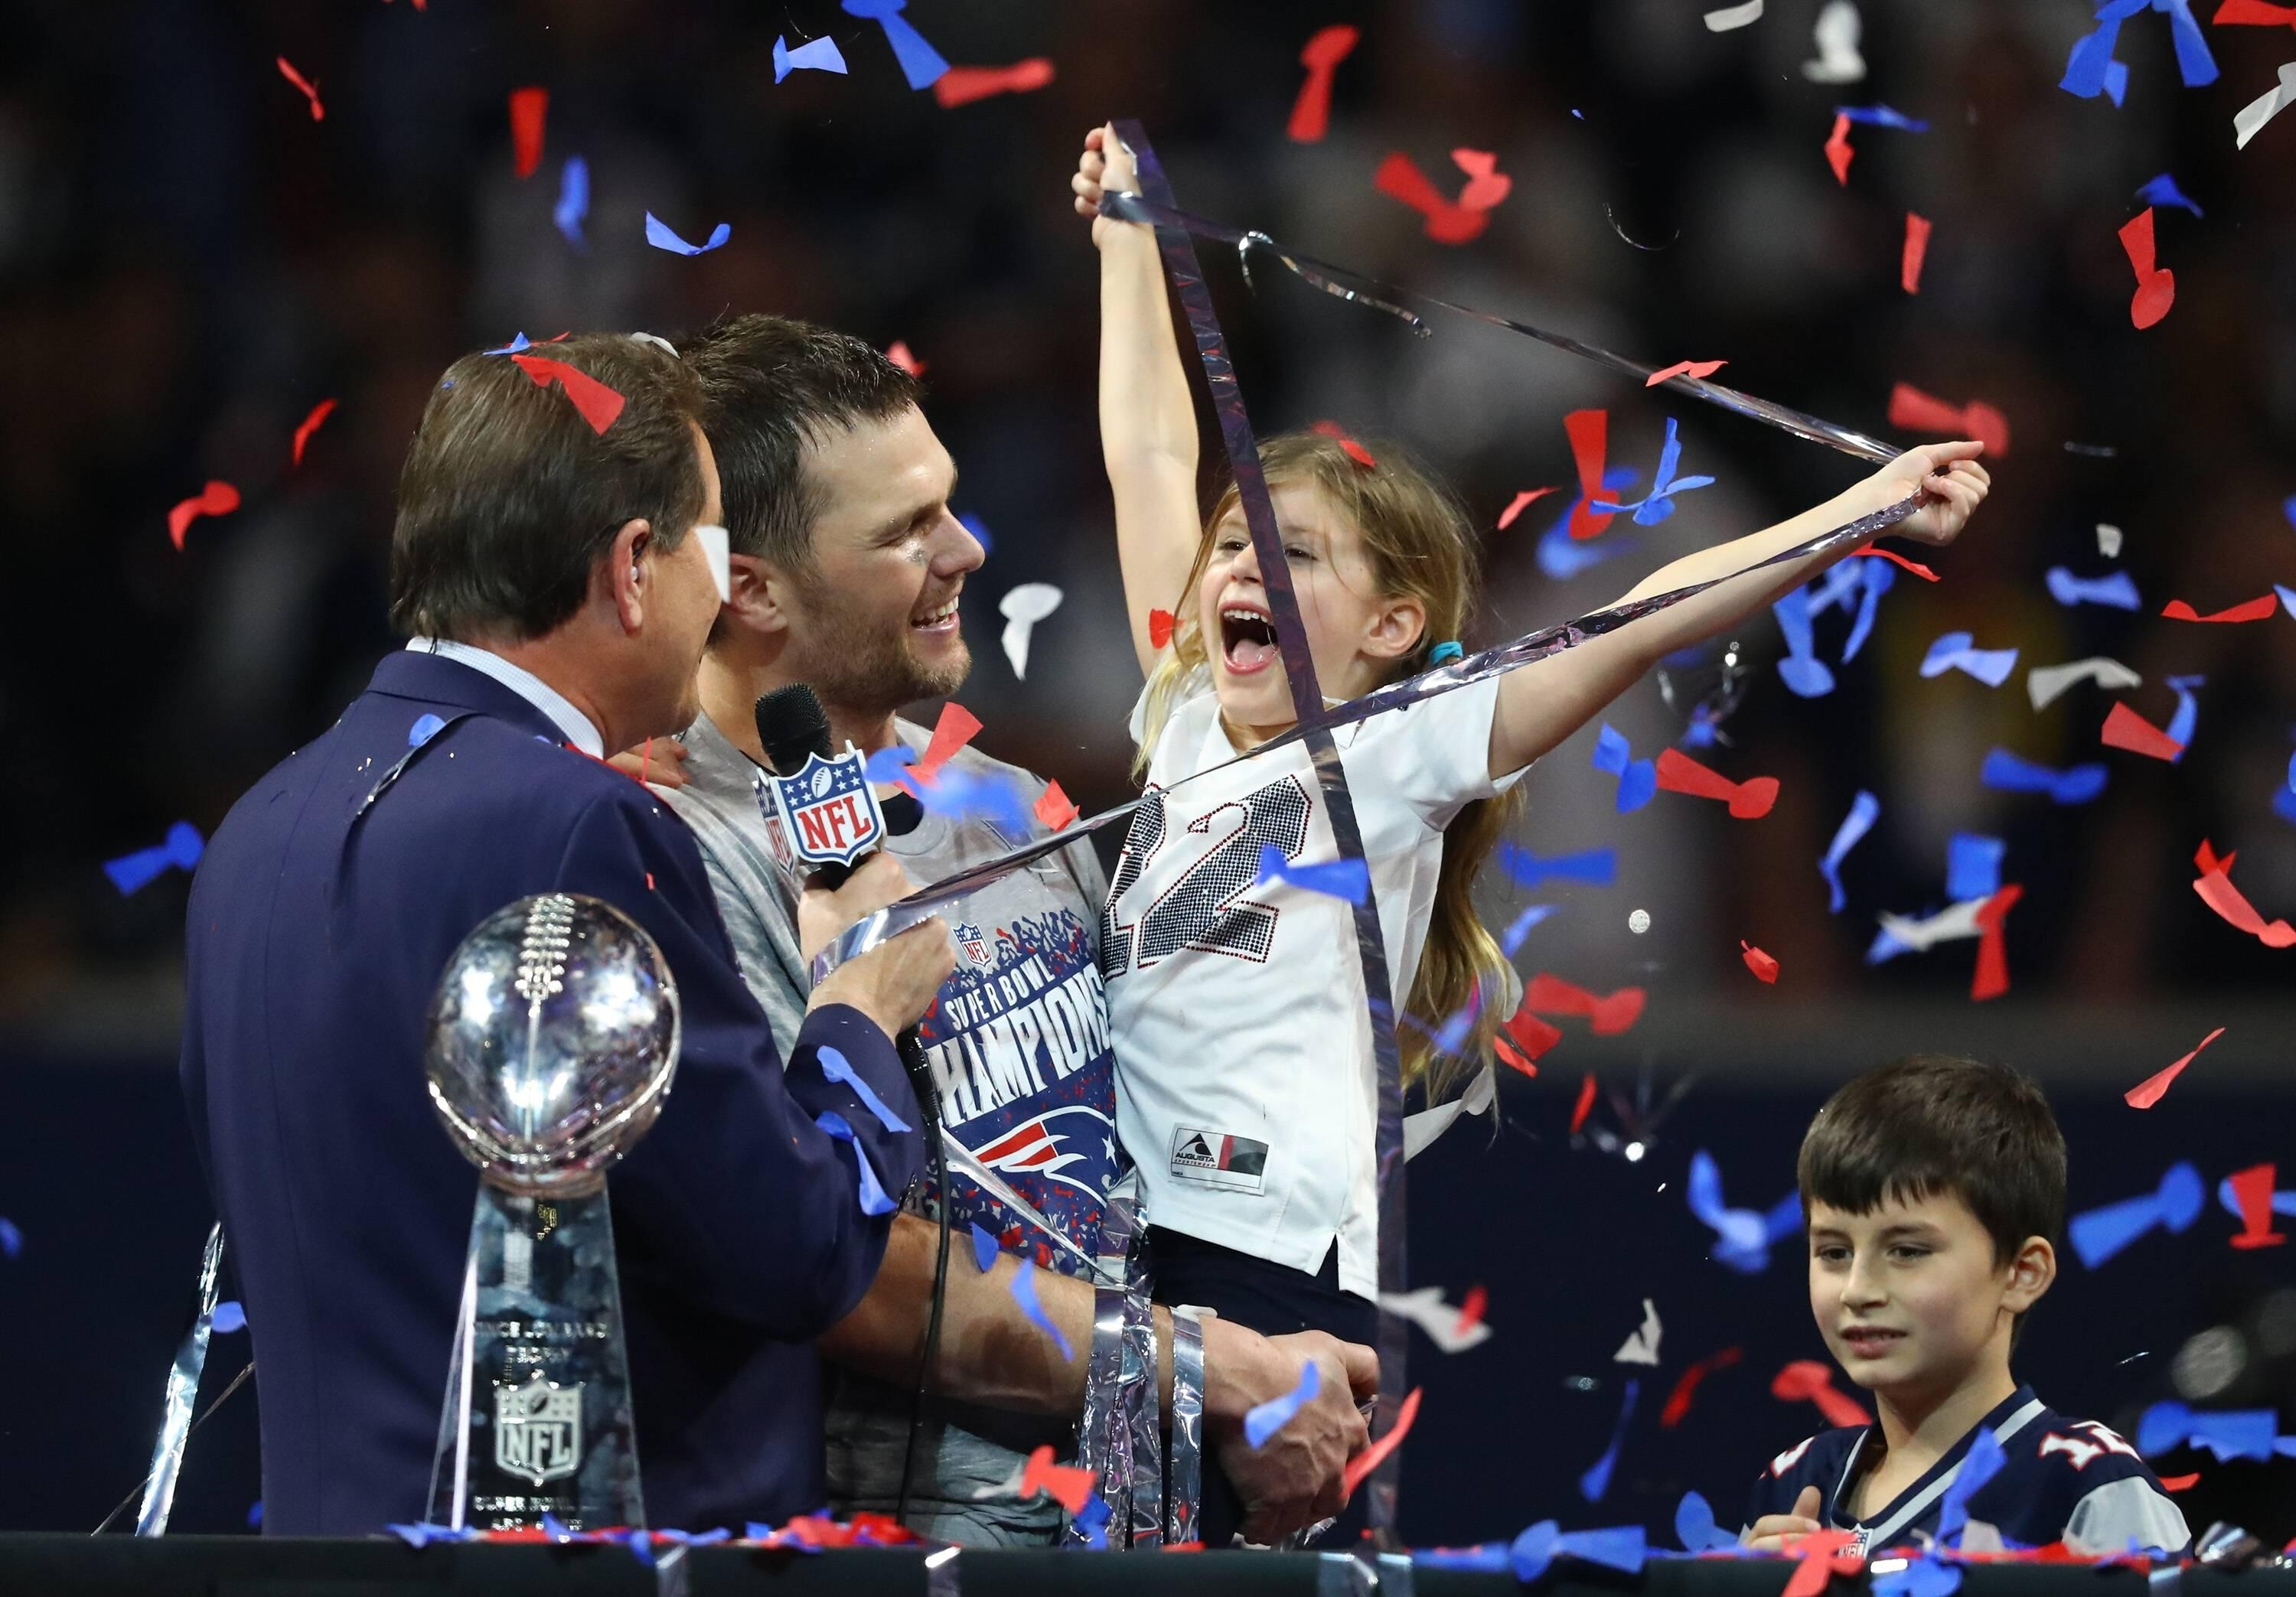 Super Bowl 2019: Die Kleine Vivian Stiehlt Ihrem Papa Tom with regard to Super Bowl 2019 Tom Brady